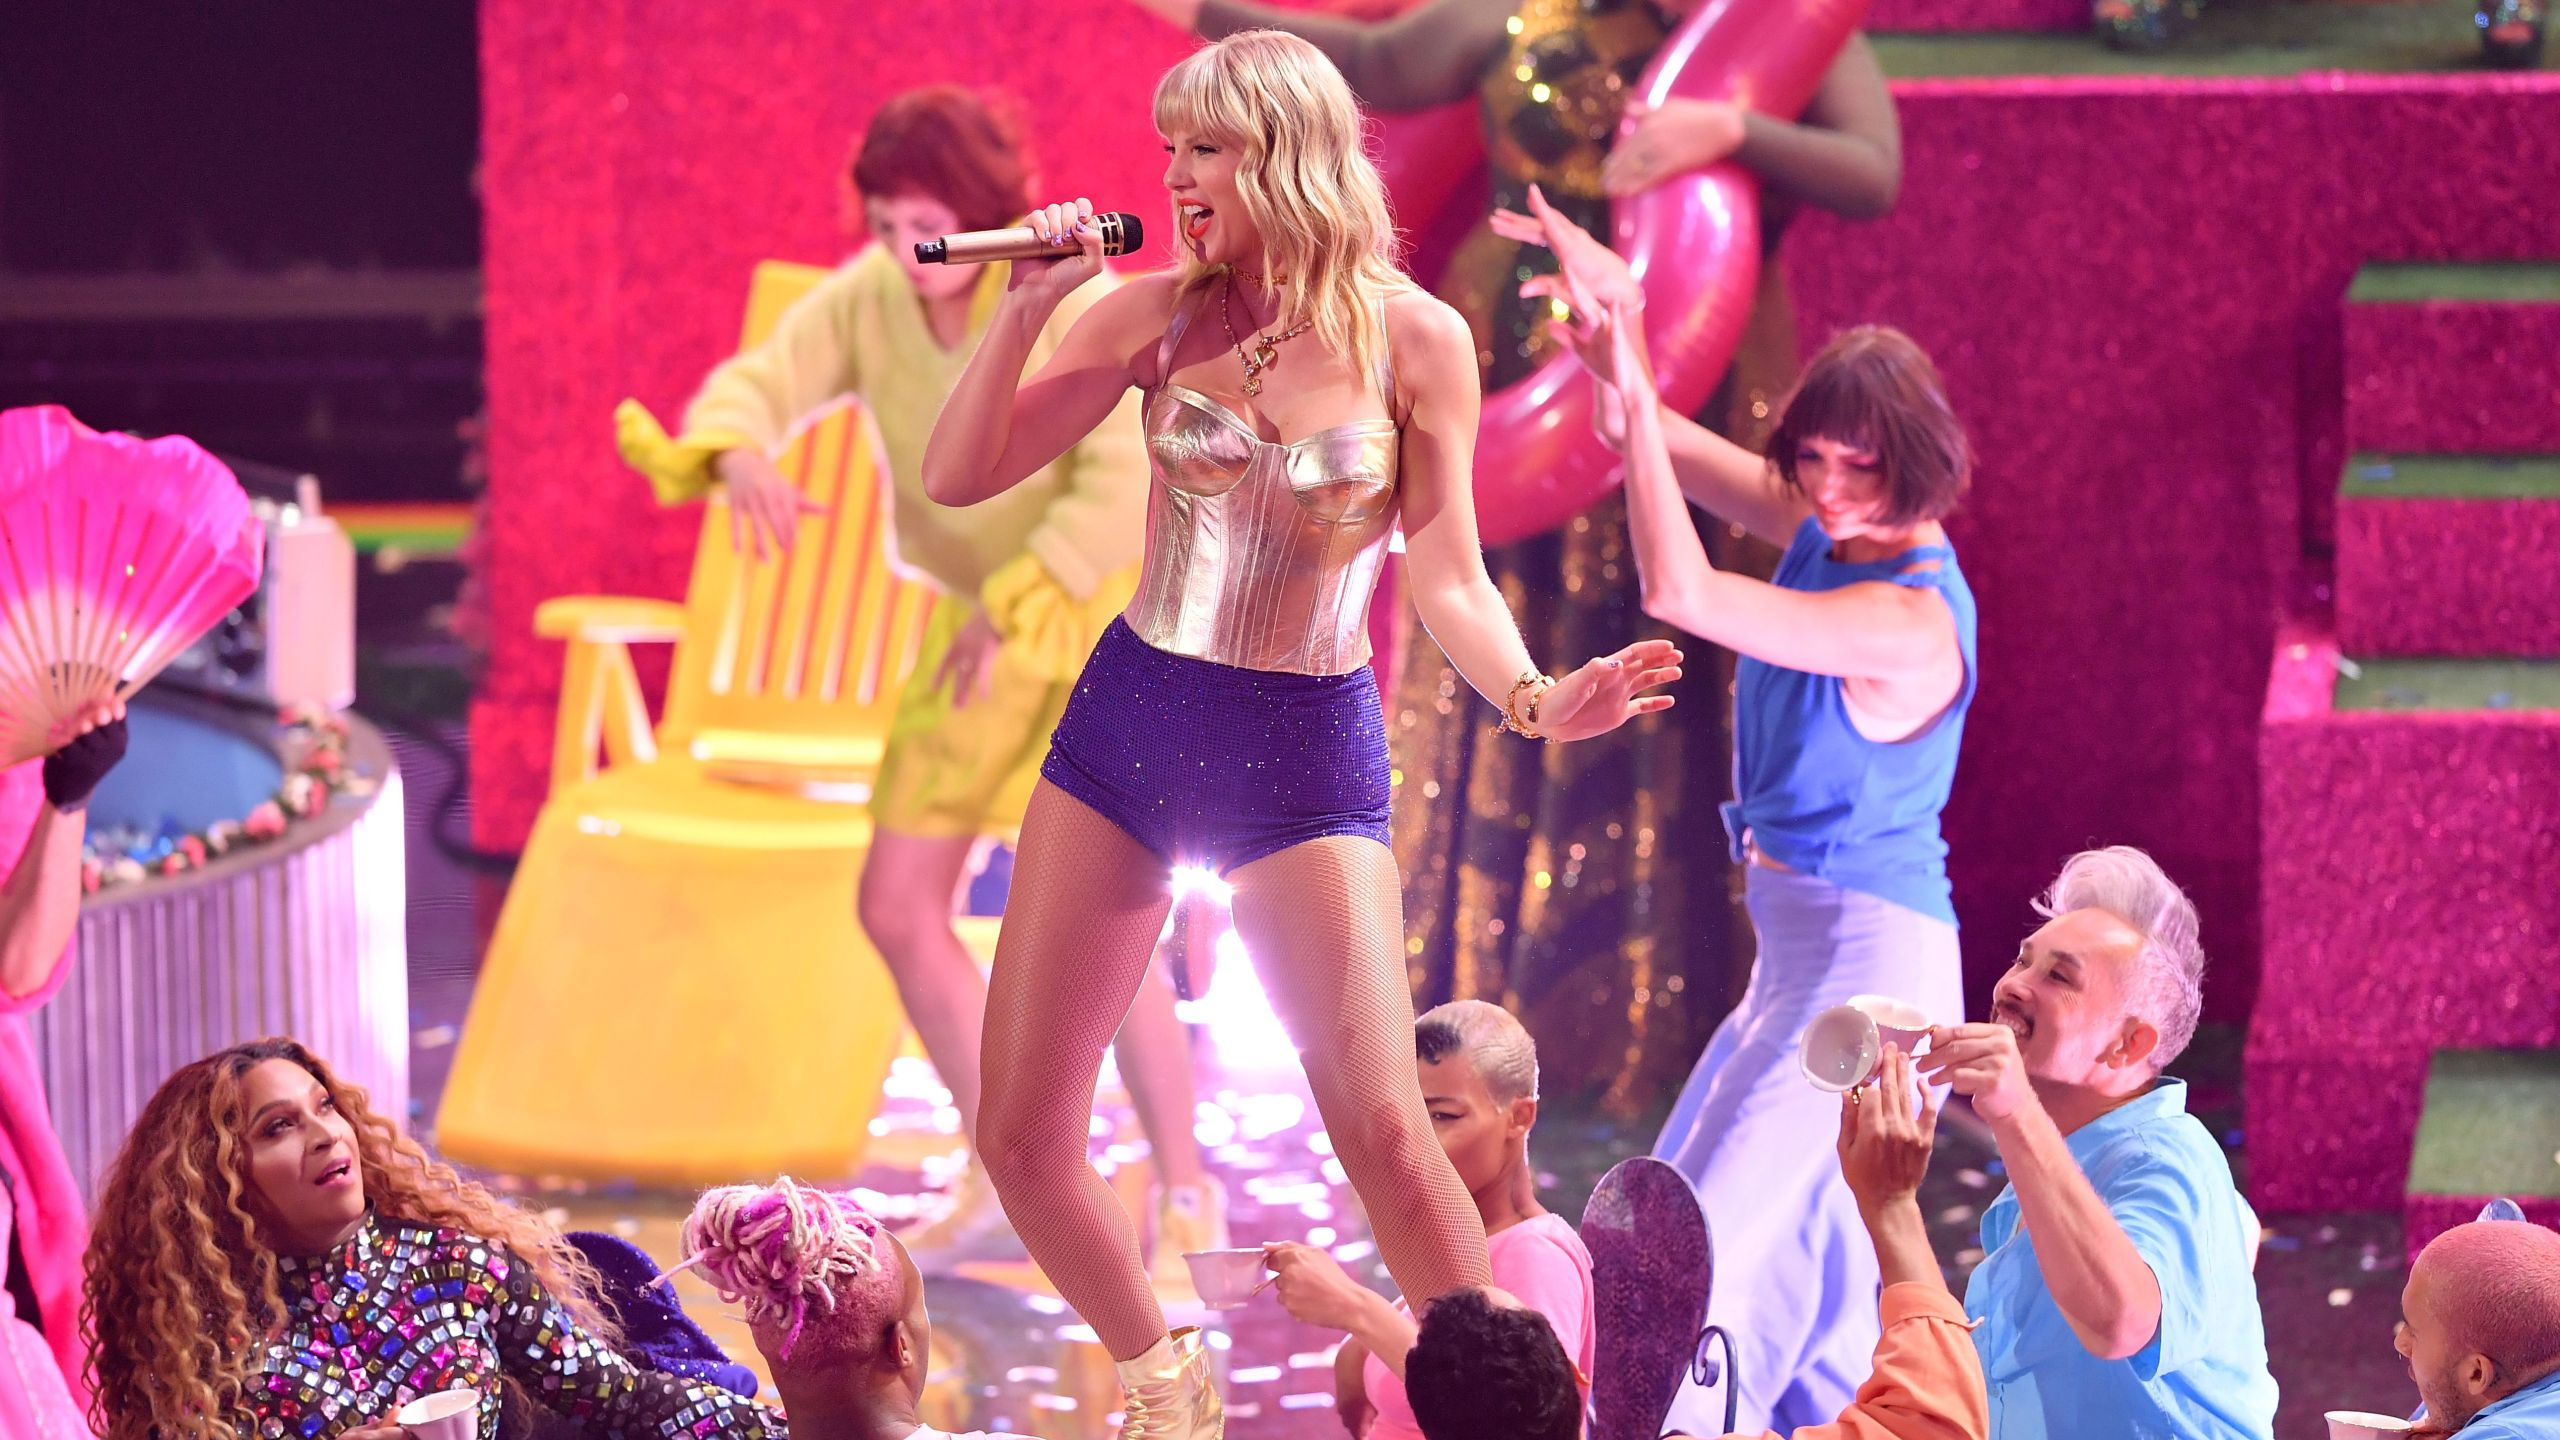 Taylor Swift performs on stage during 2019 MTV Video Music Awards at the Prudential Center in Newark, New Jersey, on August 26, 2019. (Angela Weiss/AFP via Getty Images)